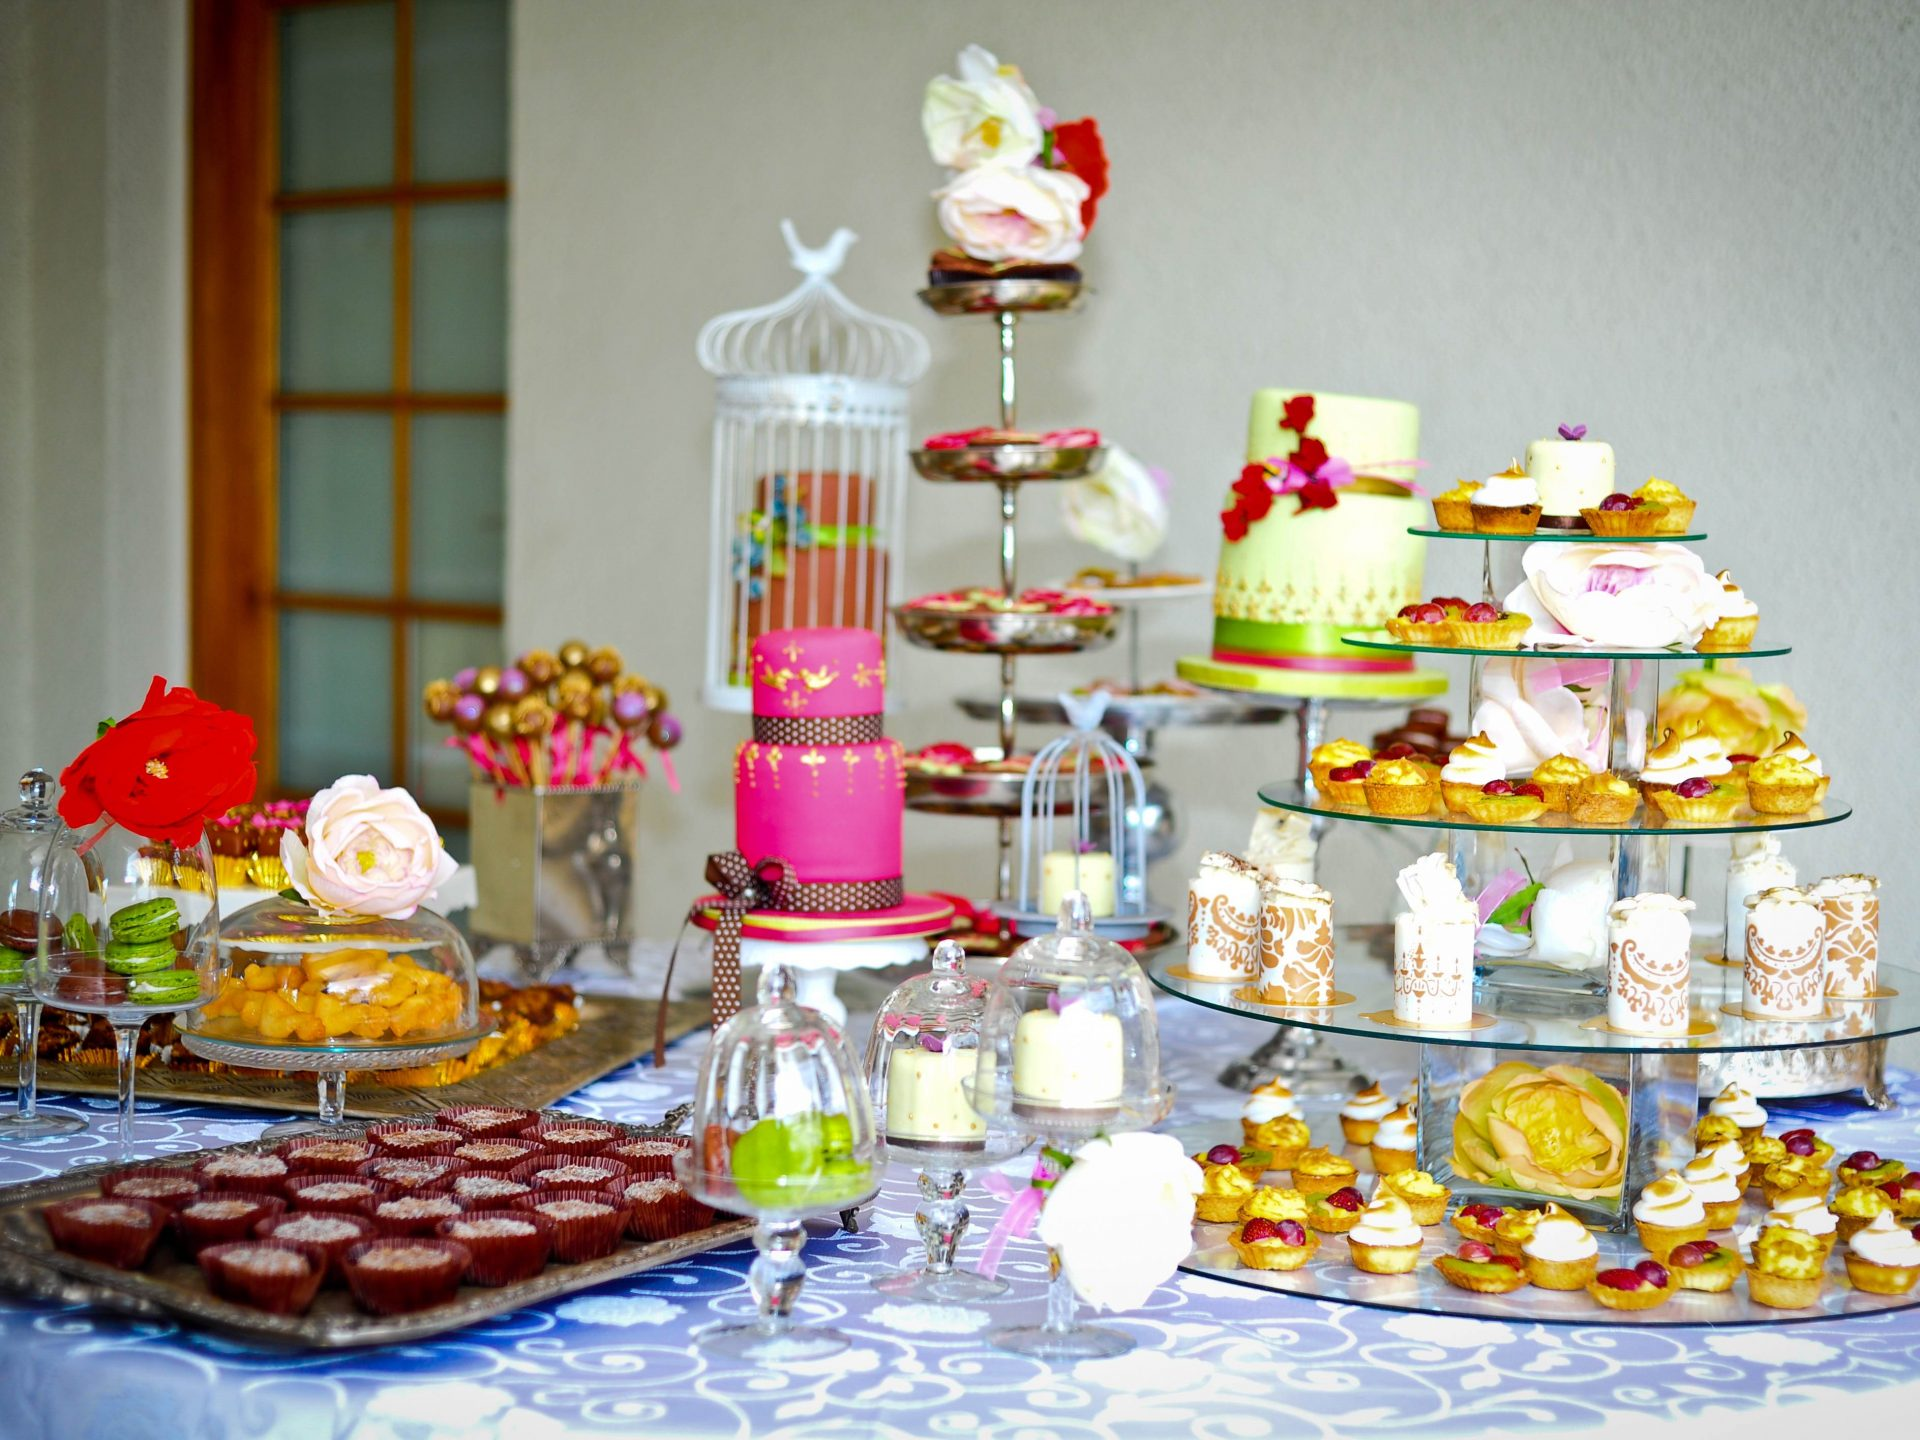 OEWONA High Tea Party-5447a